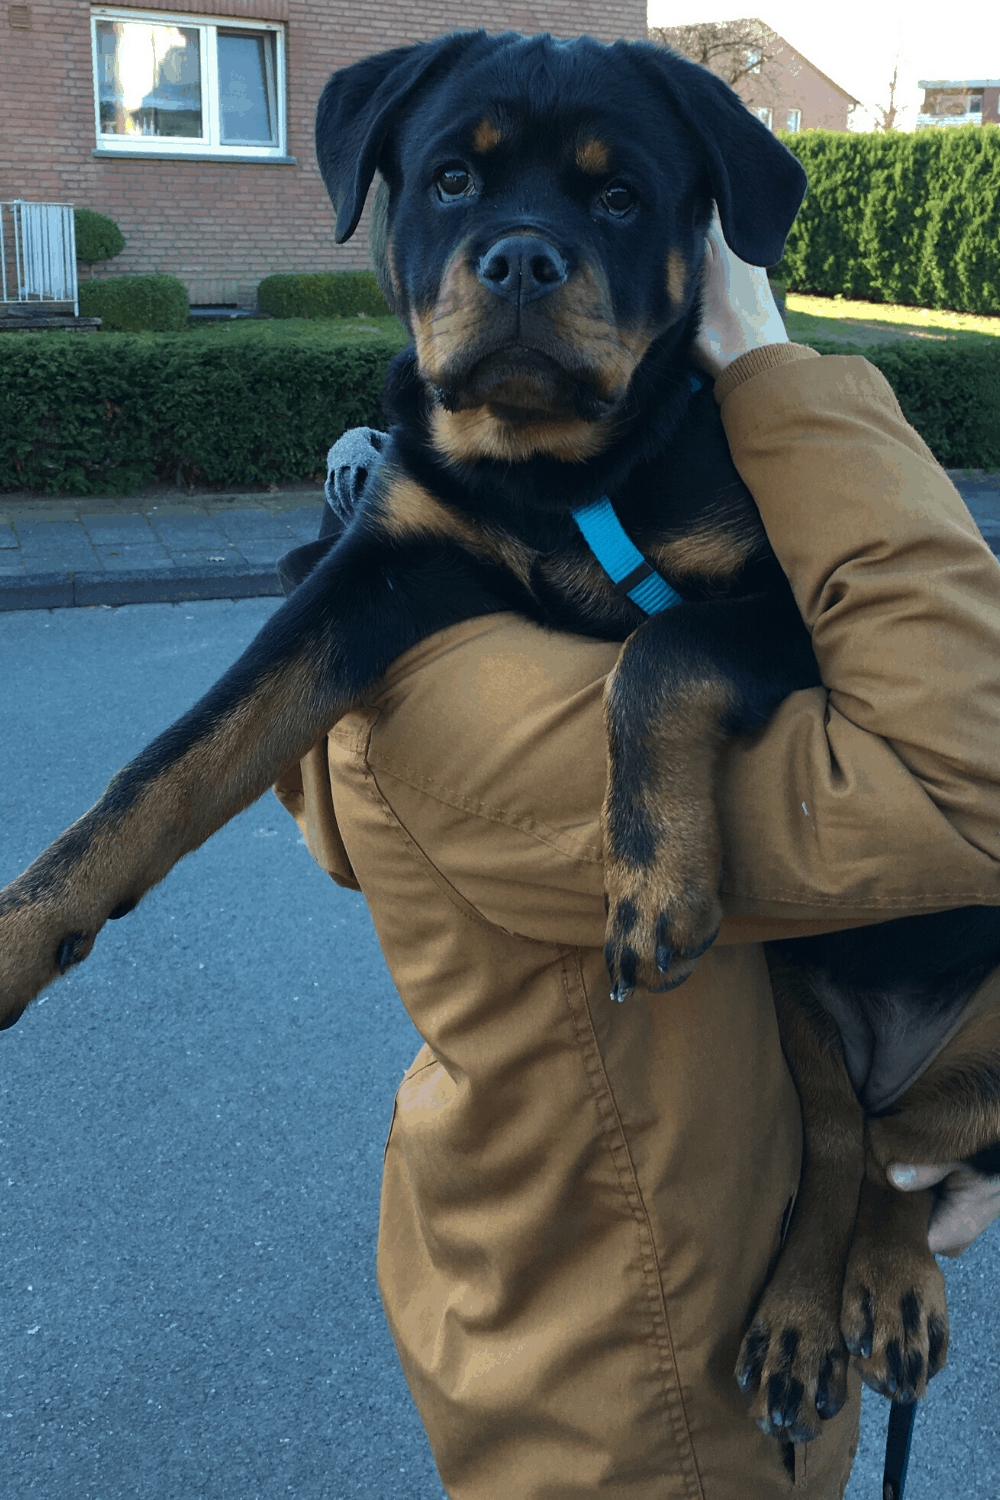 Rottweiler being carried over the shoulder withs support below the back paws.